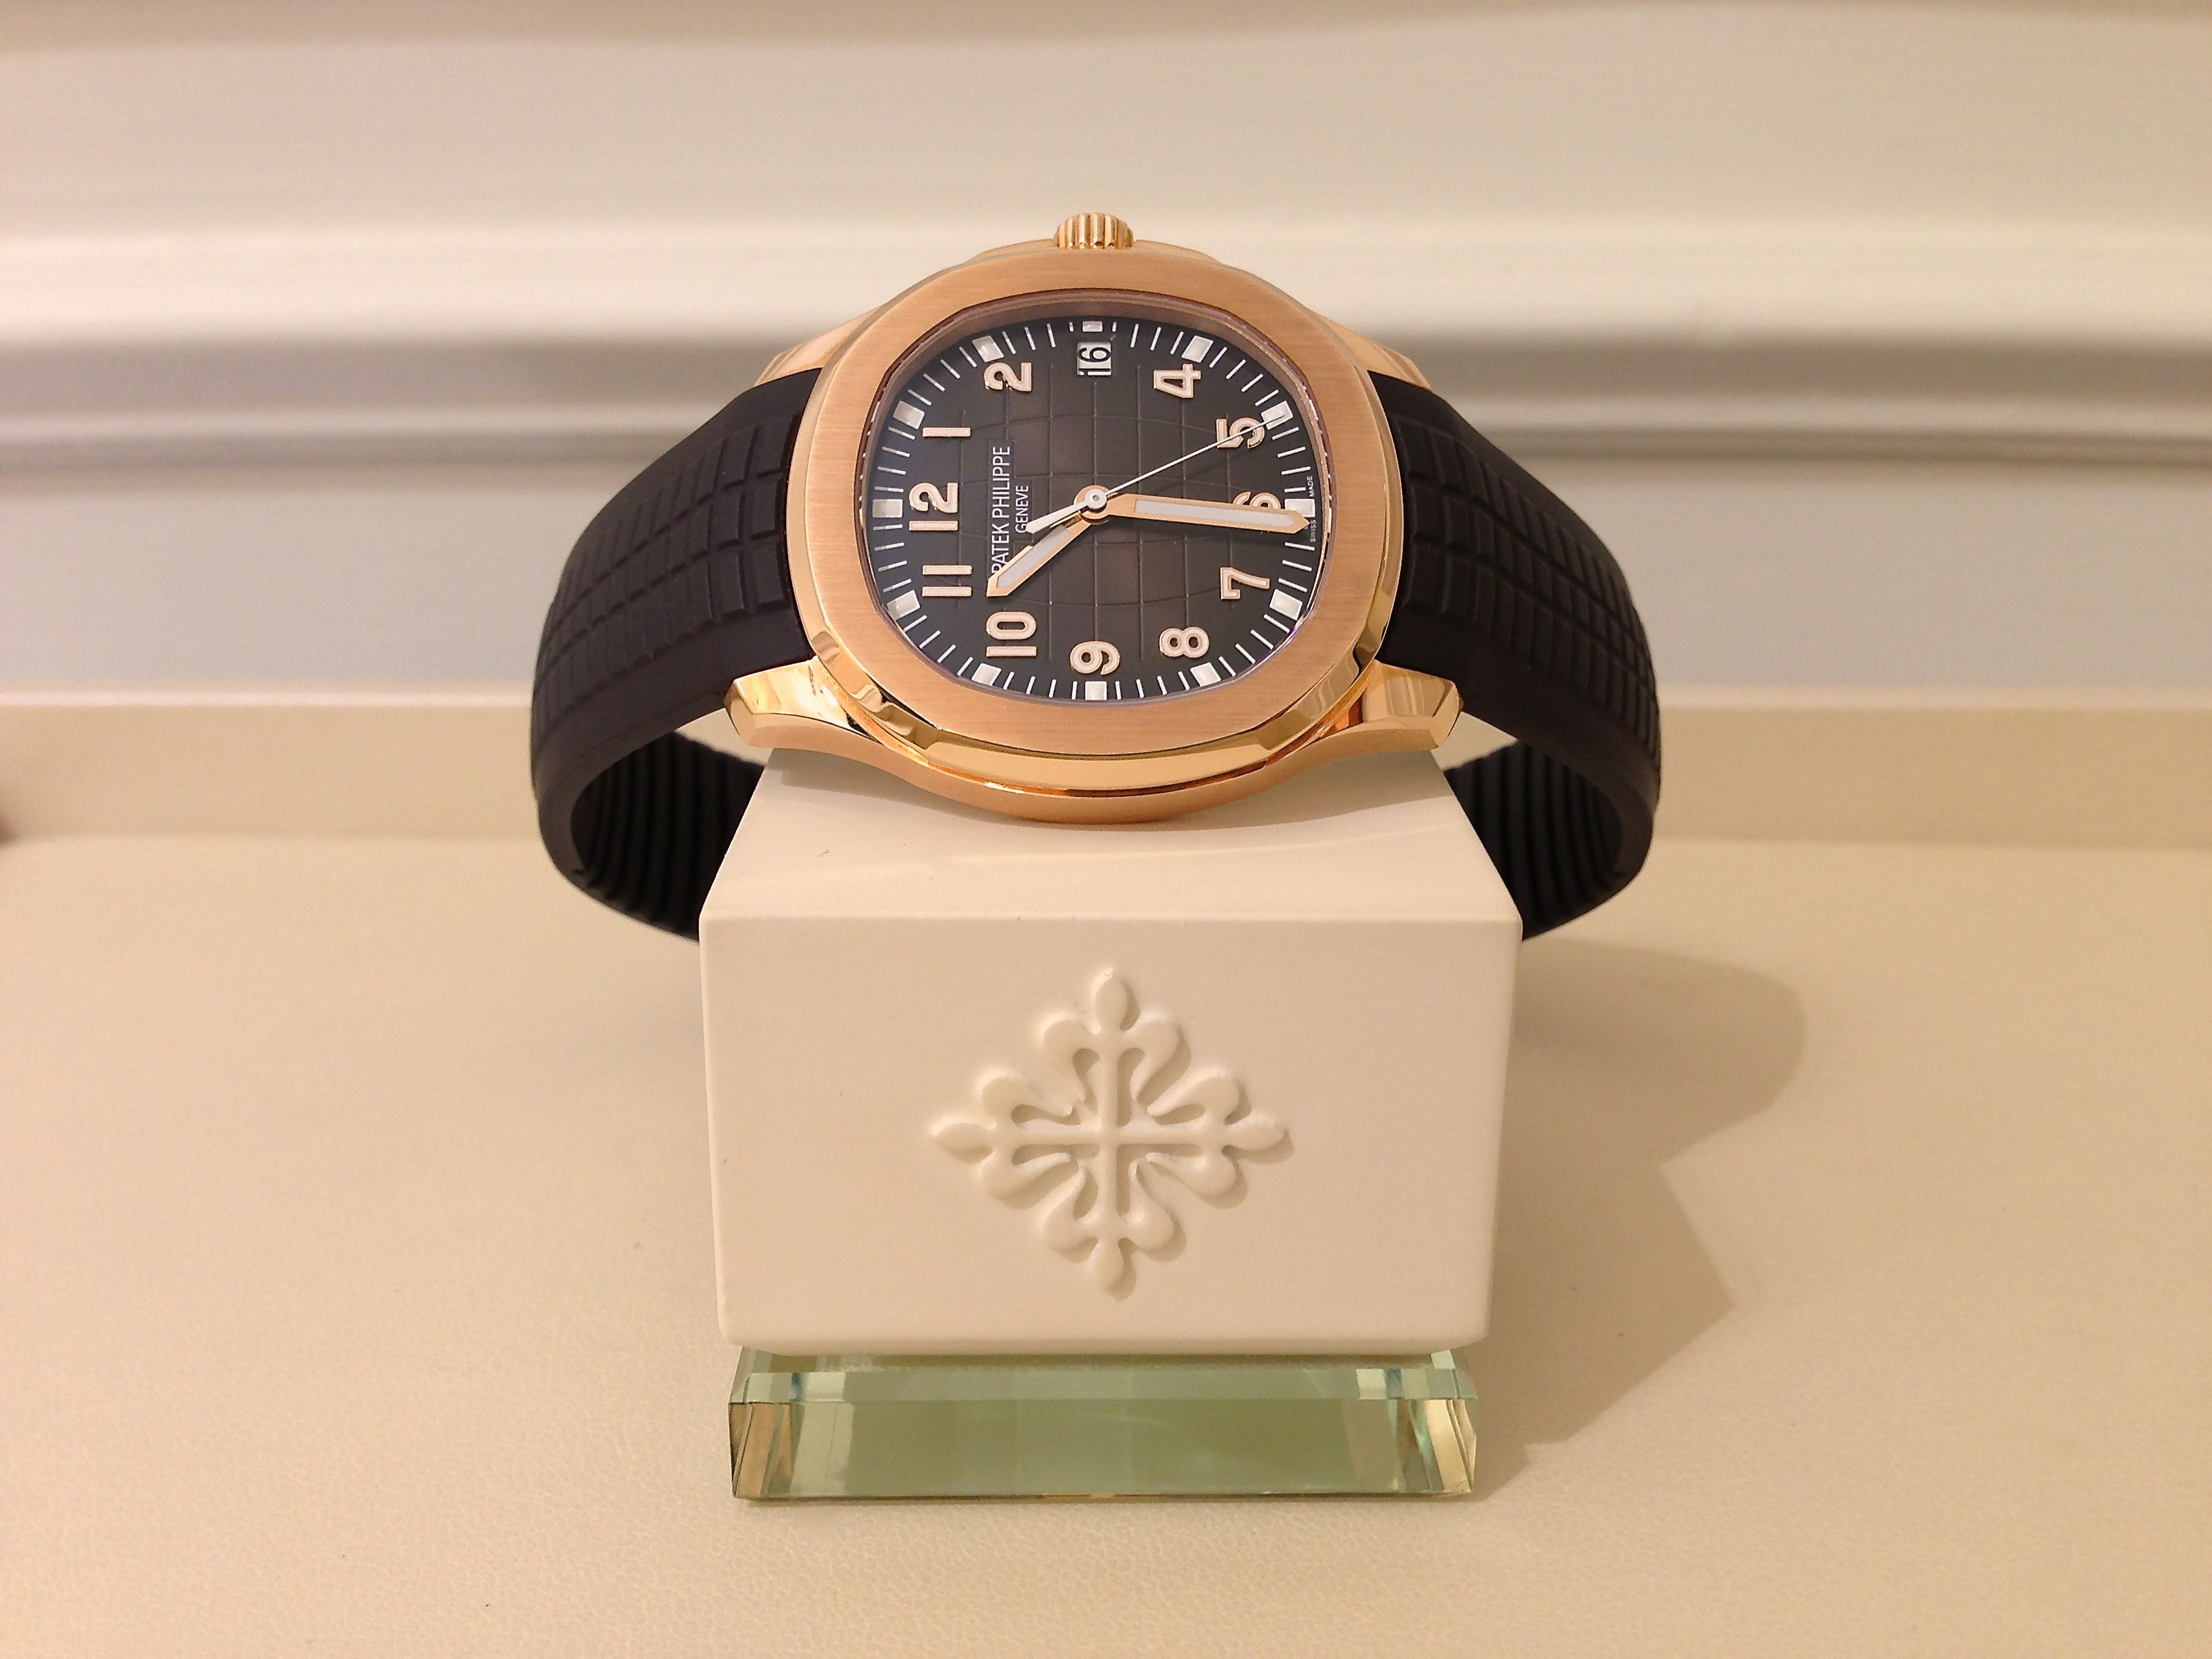 Patek Philippe Aquanaut 5167R in 18k Rose Gold with Chocolate-brown dial and strap